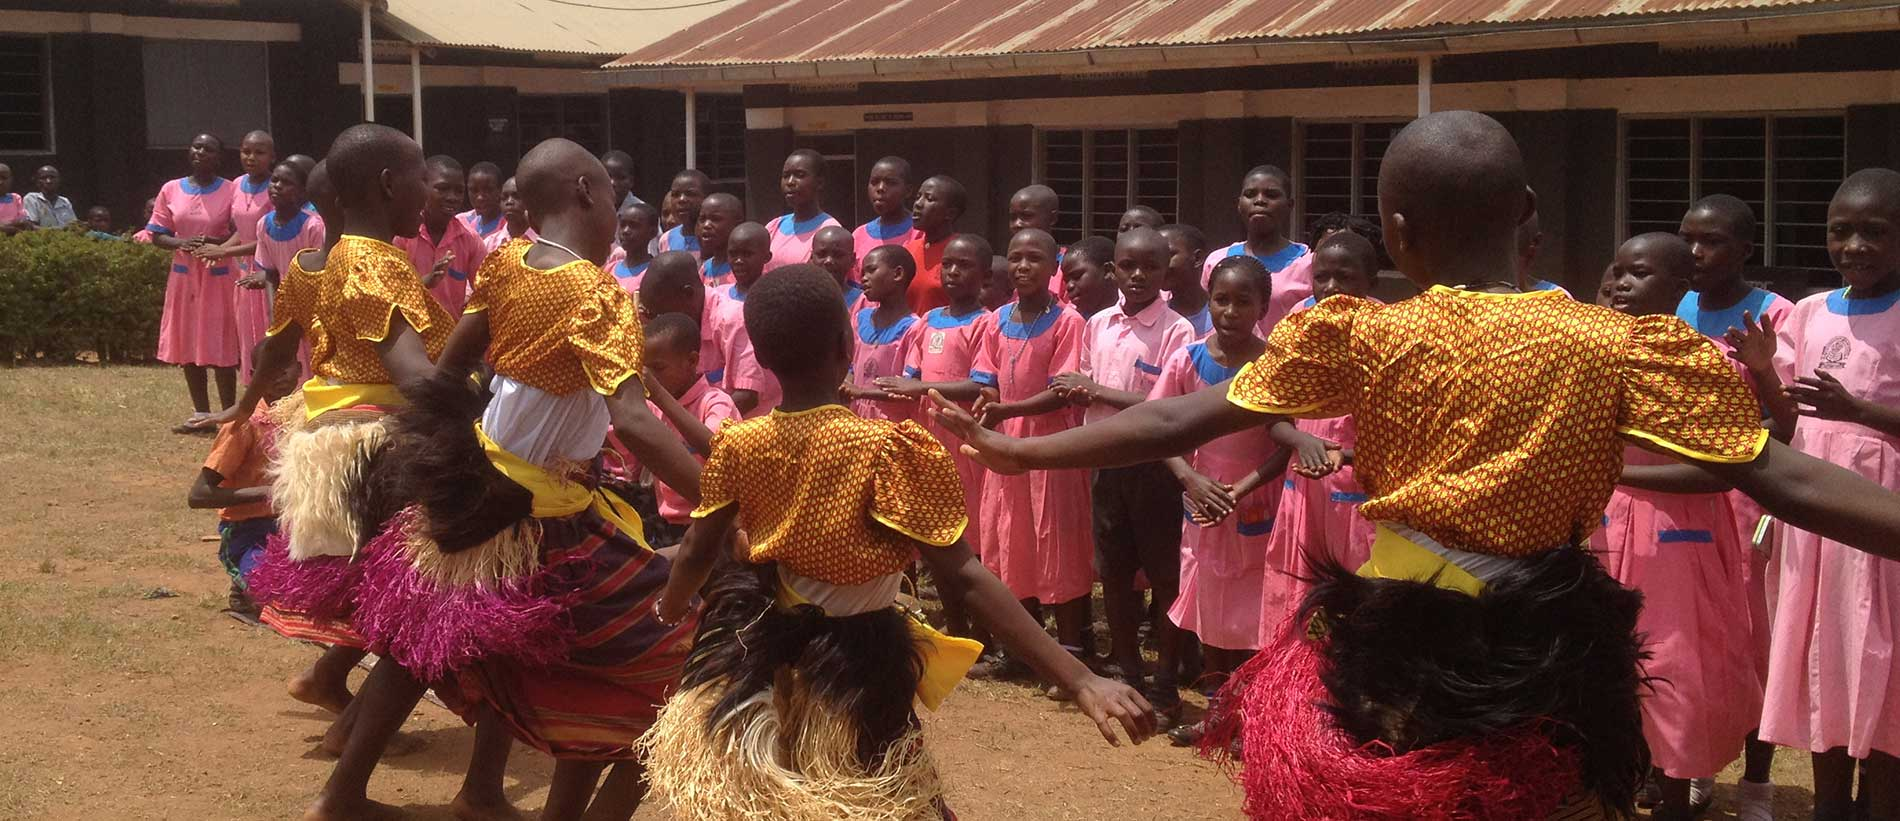 Children perform a traditional dance at Little Flowers Primary School Kalisizo, Uganda